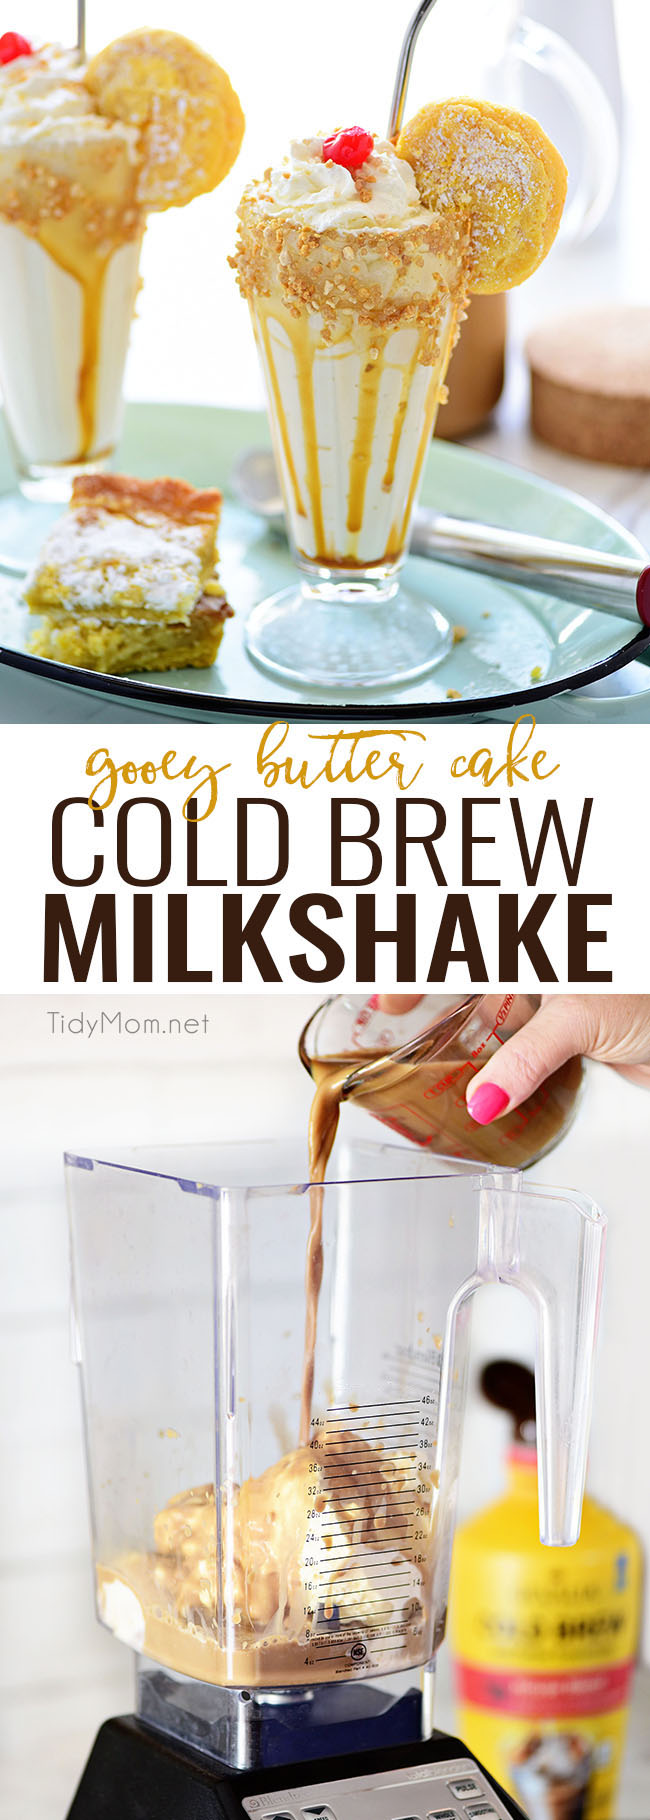 Creamy and delicious, a Gooey Butter Cake Cold Brew Milkshake is the perfect dessert or treat! This decadent cold brew milkshake tastes like a piece of gooey butter cake with a cup of coffee. Print the recipe at TidyMom.net